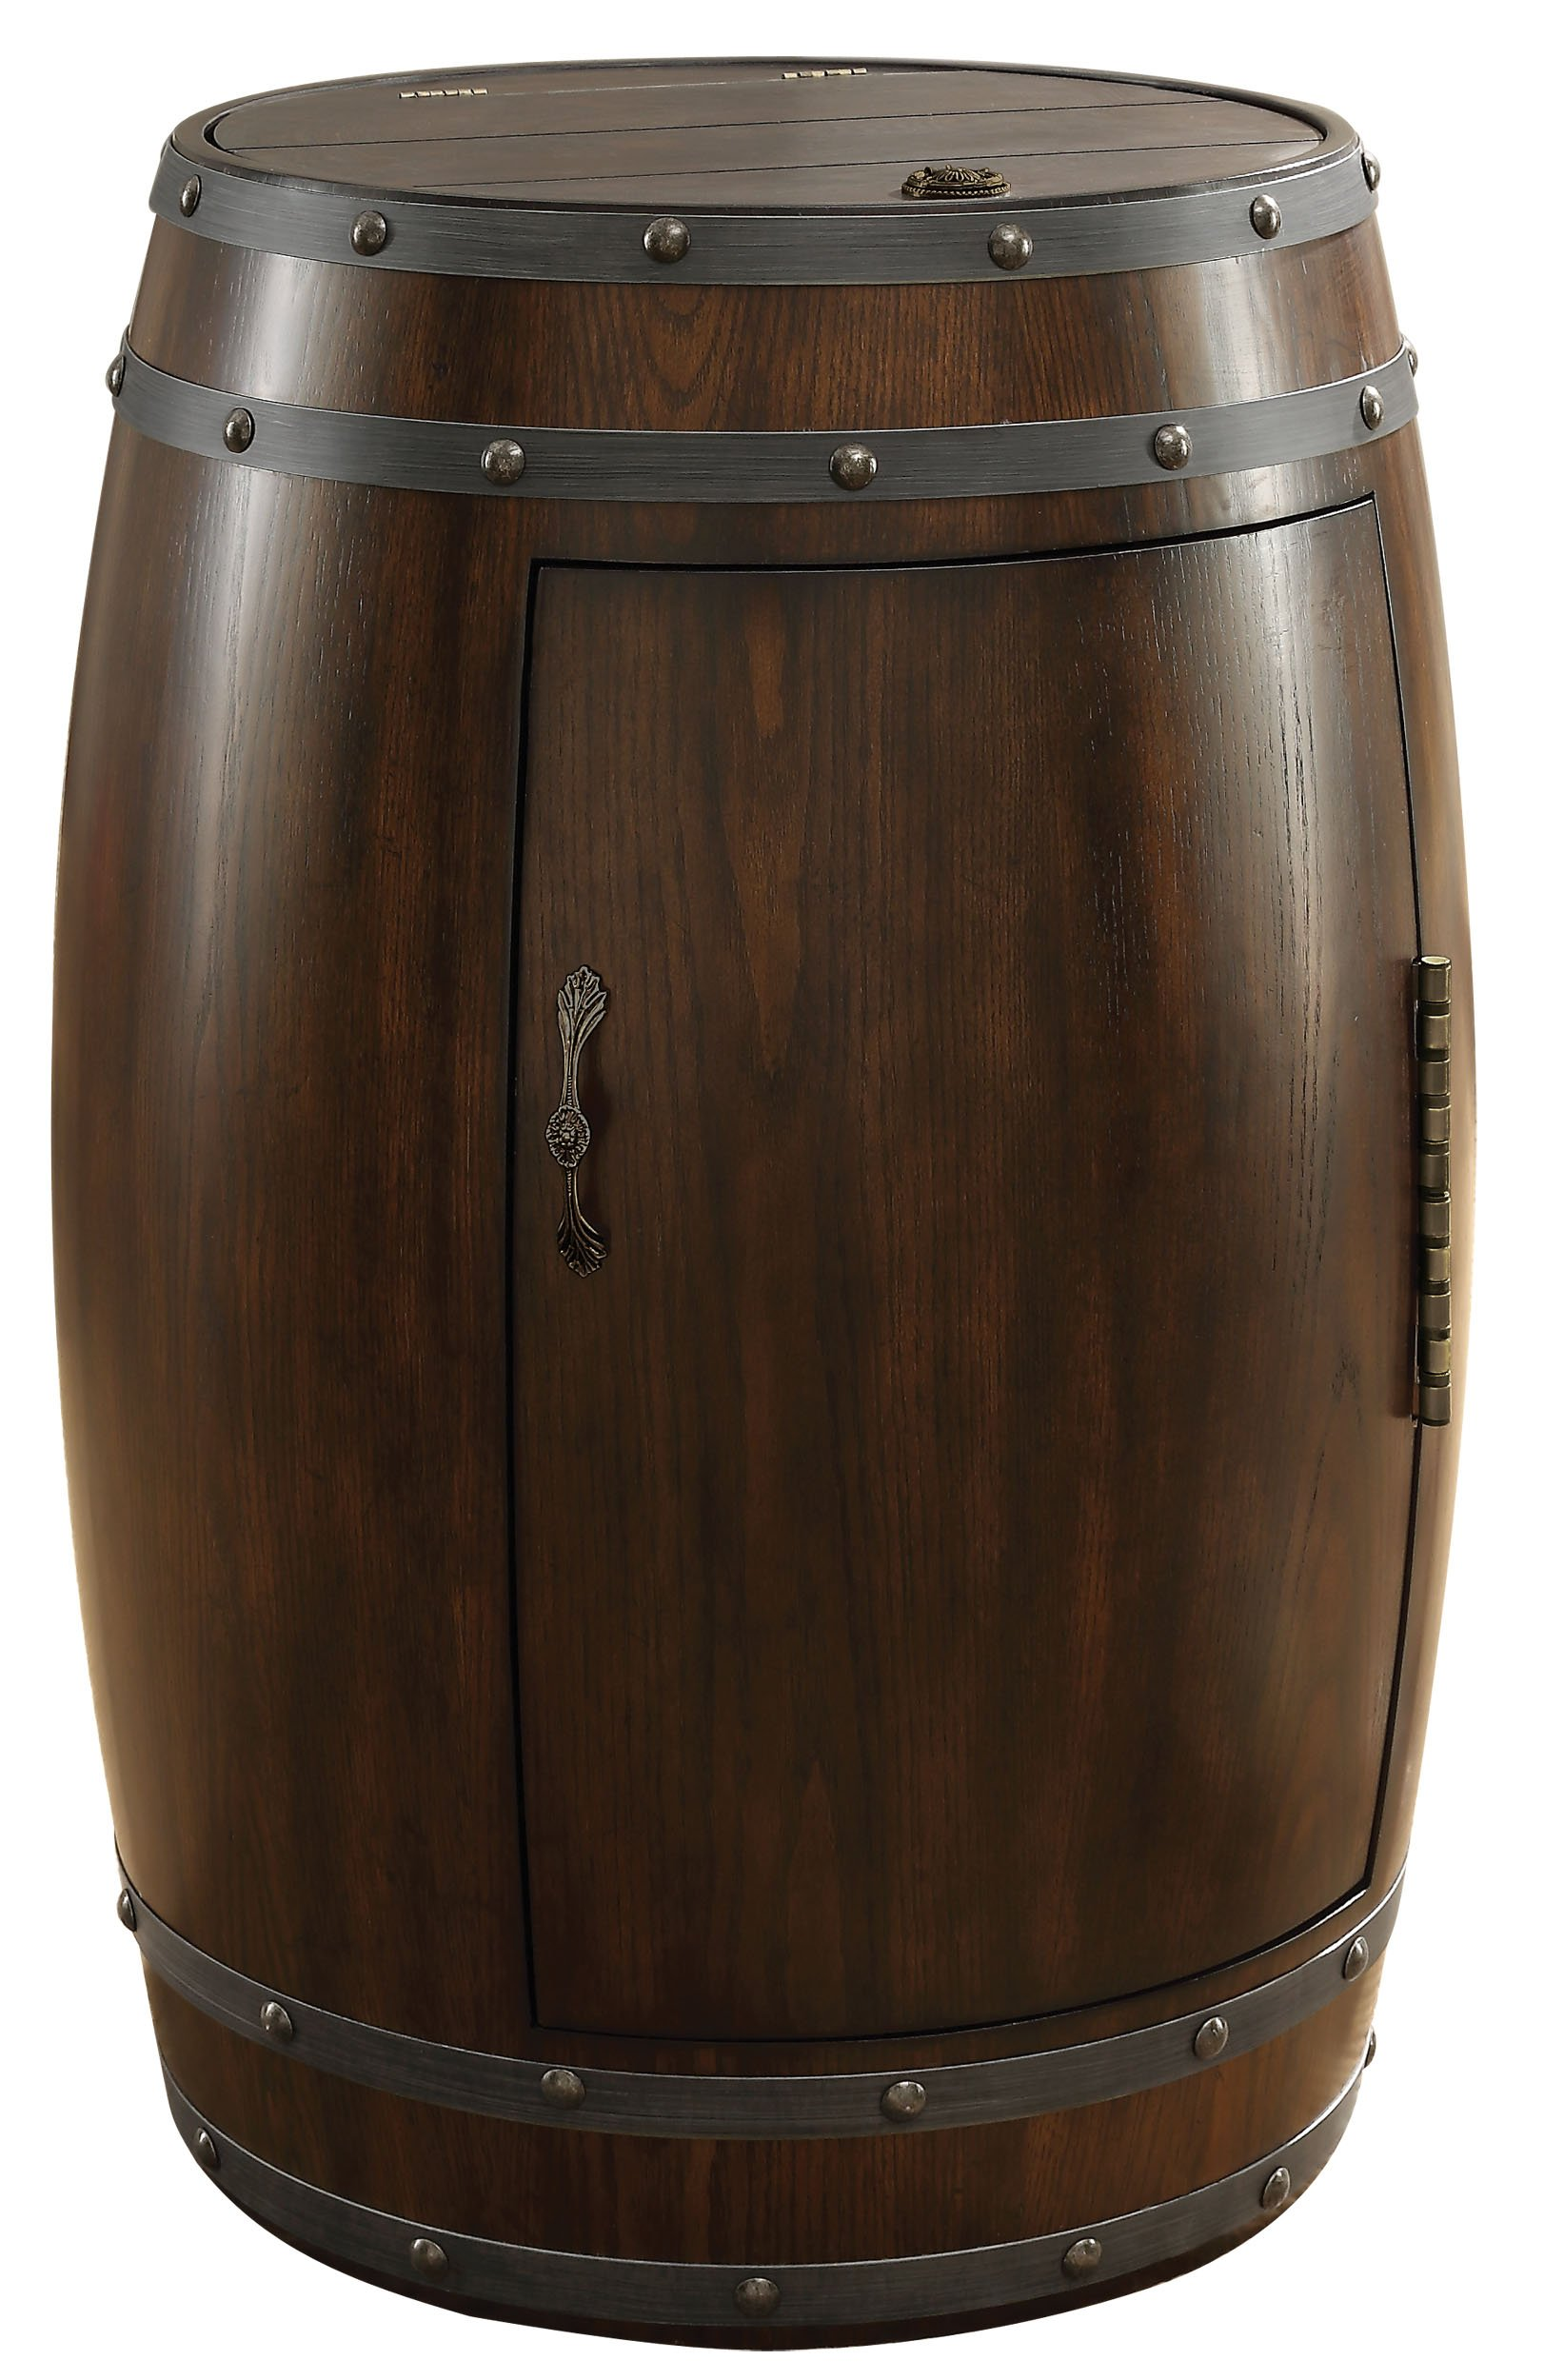 Homelegance Cabernet Wine Barrel Refrigerator, Dark Cherry by Homelegance